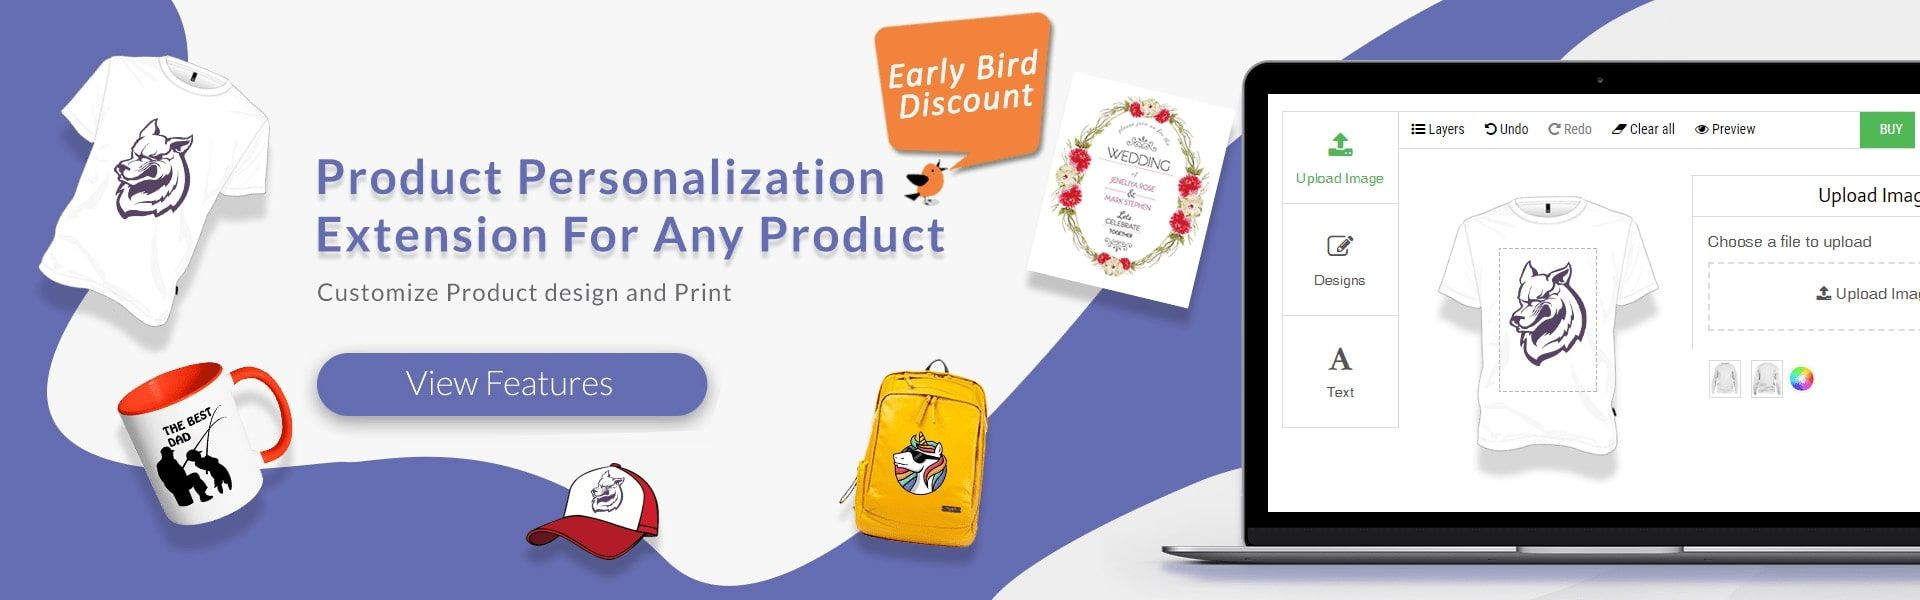 store-setubridge-bird-discount